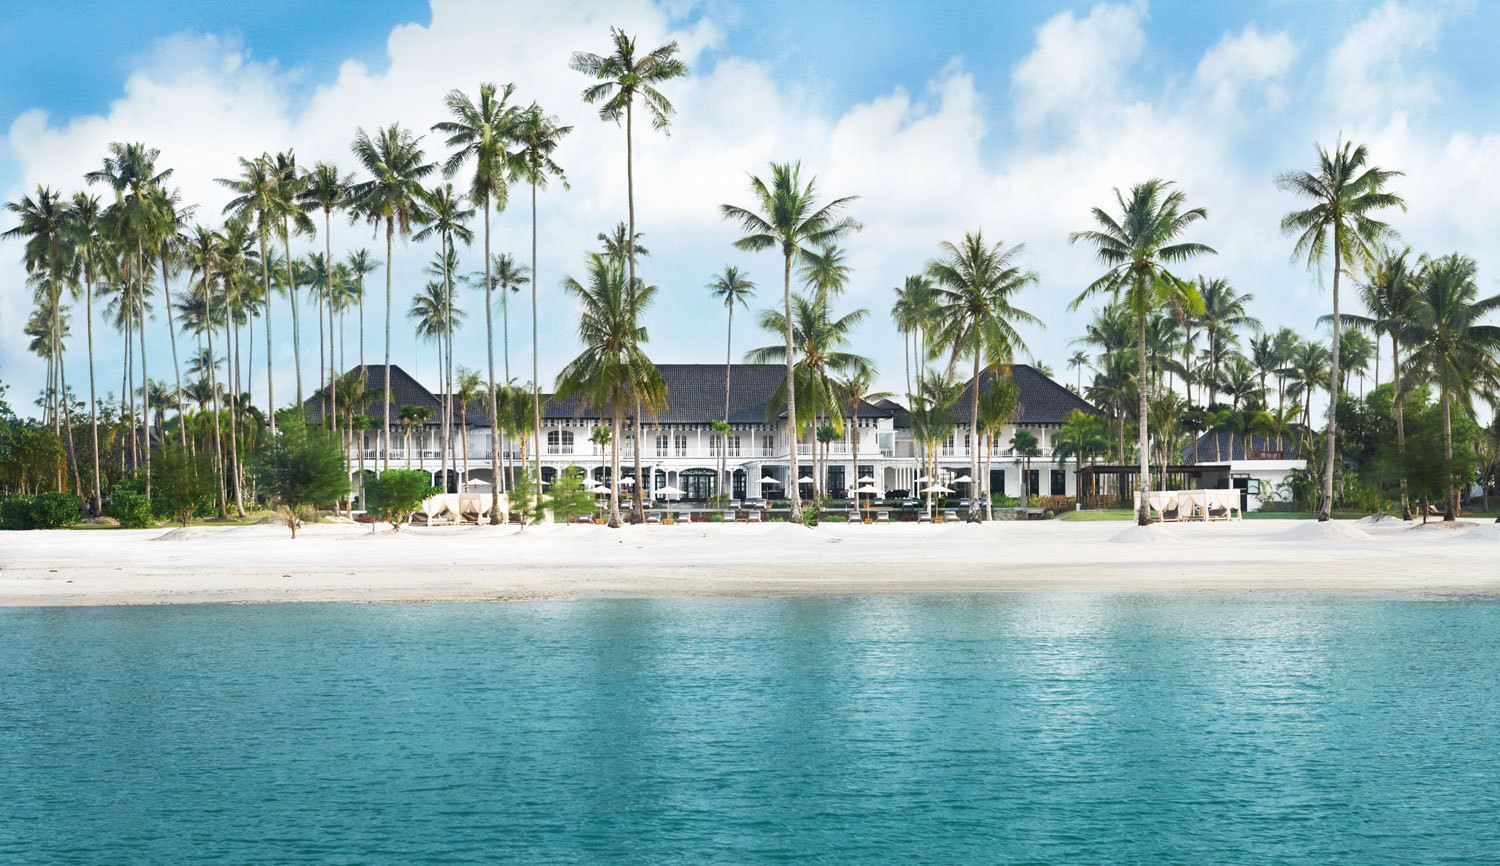 Set in a coconut grove on the Indonesian island of Bintan, the colonial-style Sanchaya resort overlooks cerulean seas and a white-sand shore.